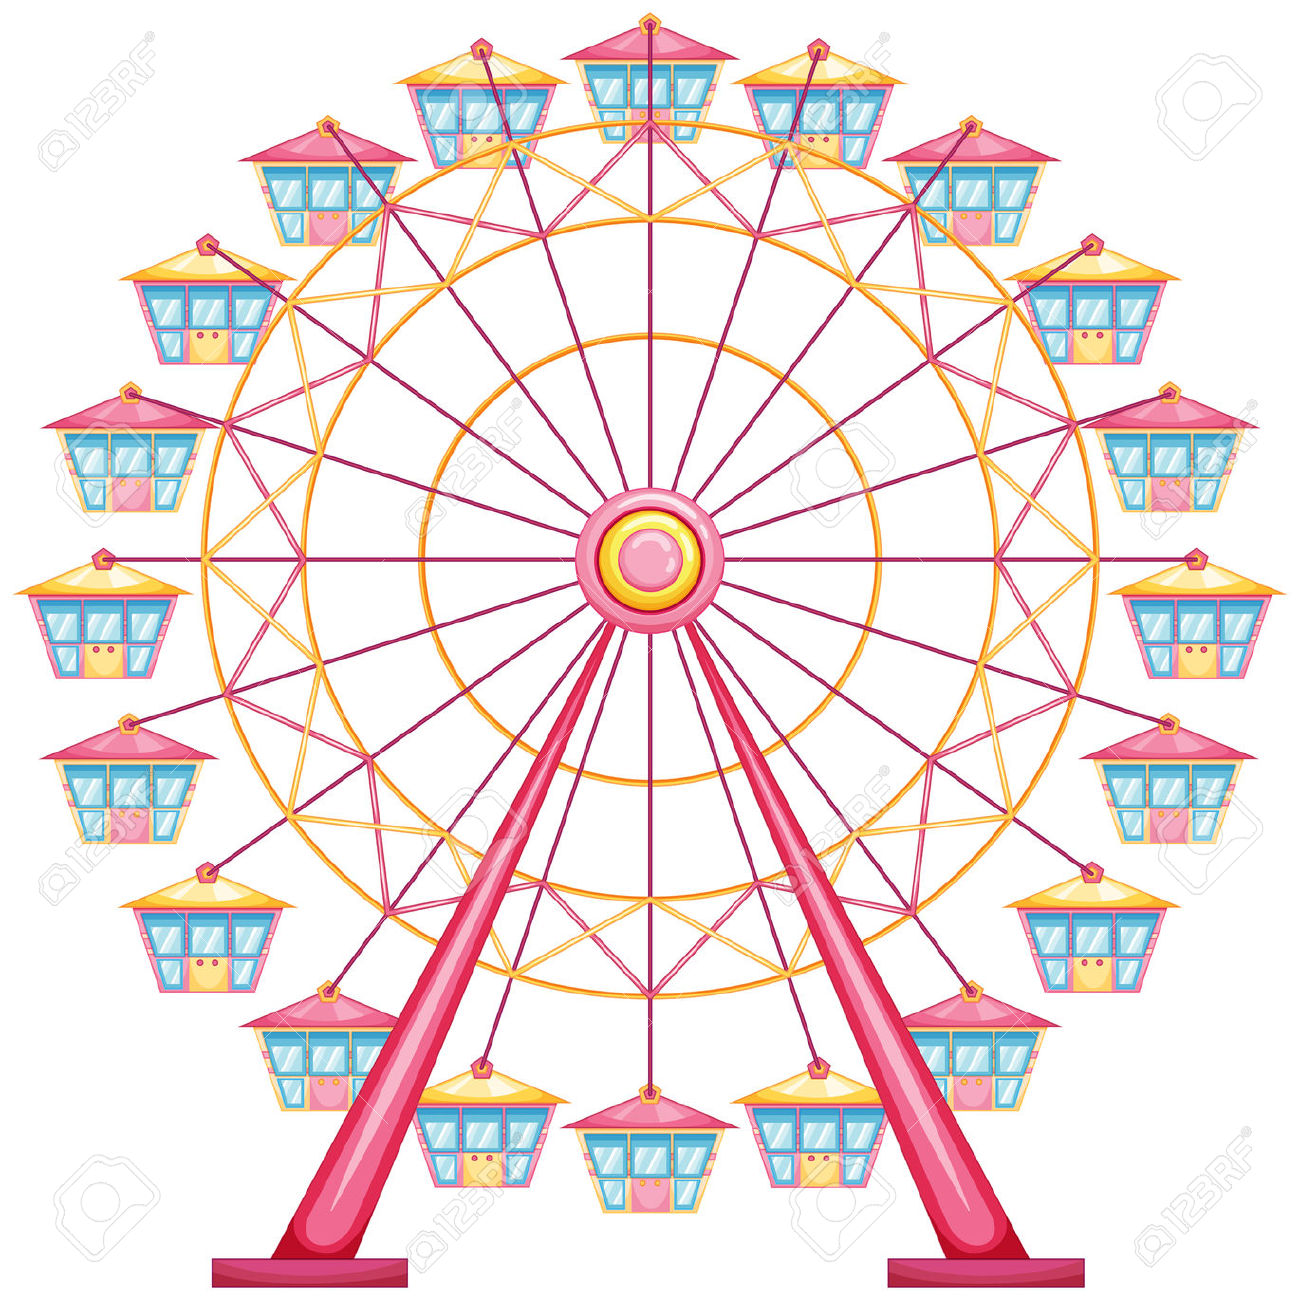 Big wheel clipart invisible background.